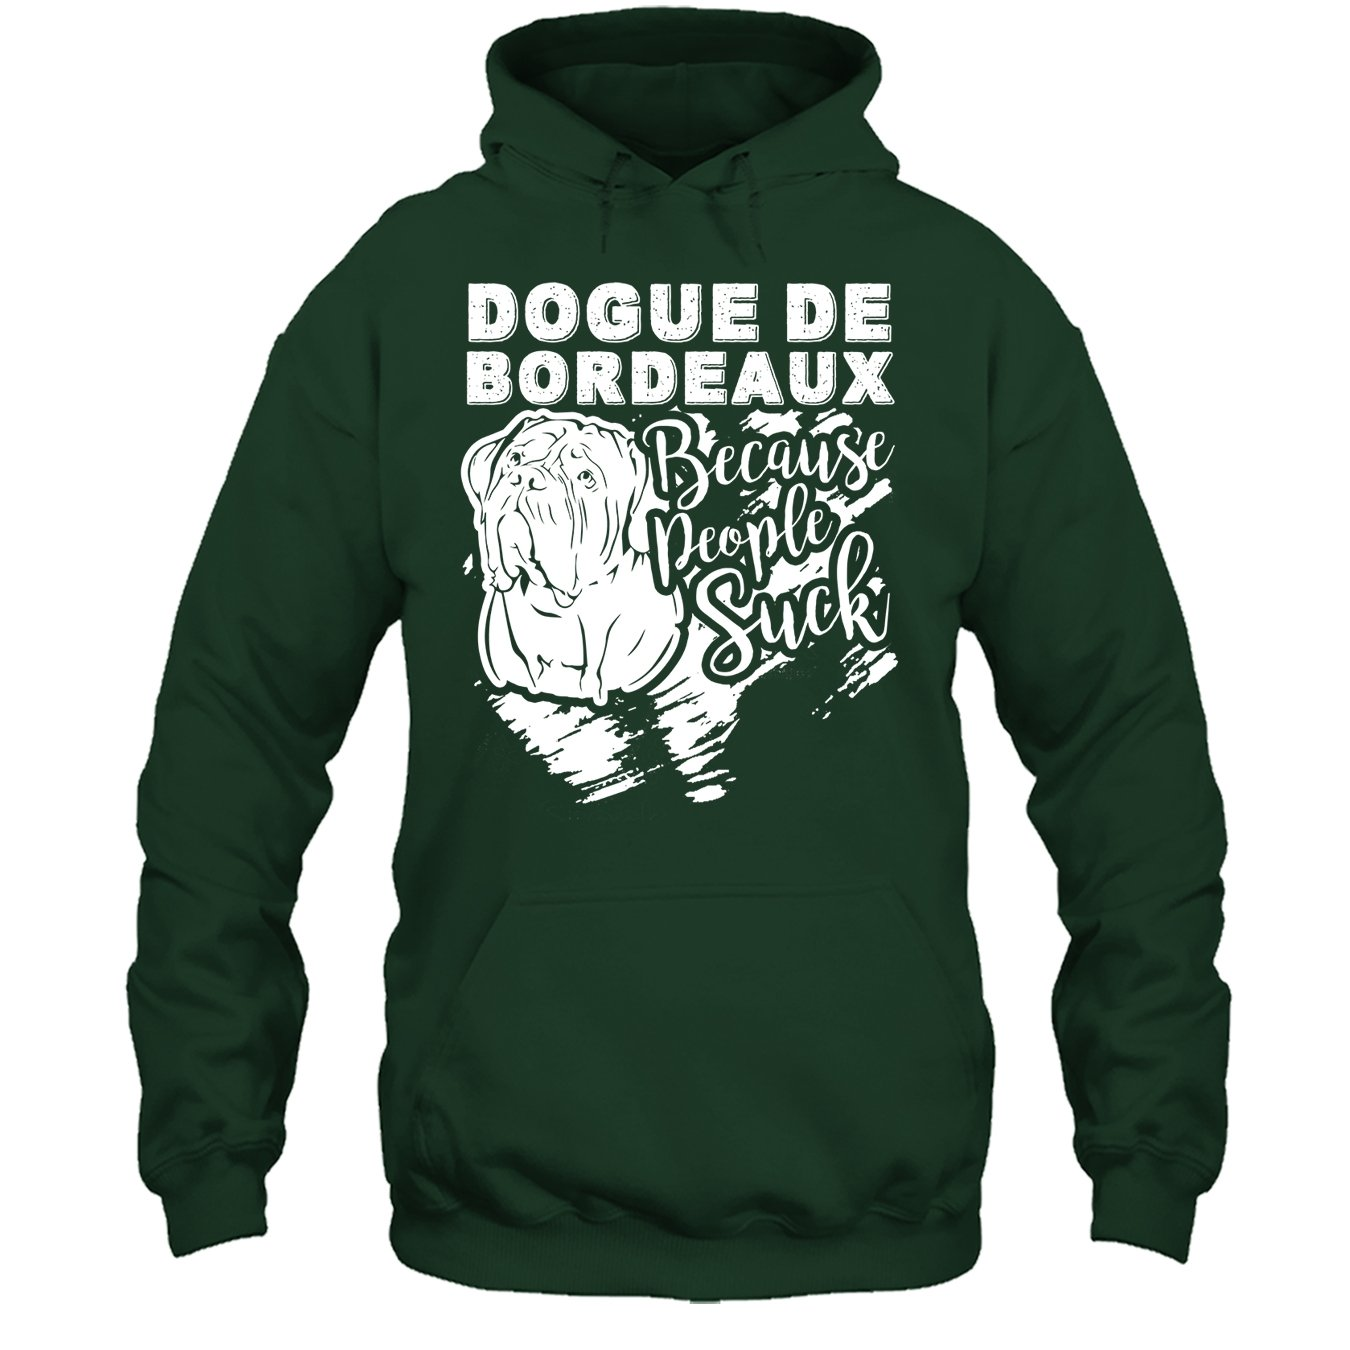 Dogue De Bordeaux T Shirt Because People Suck Tee Shirt